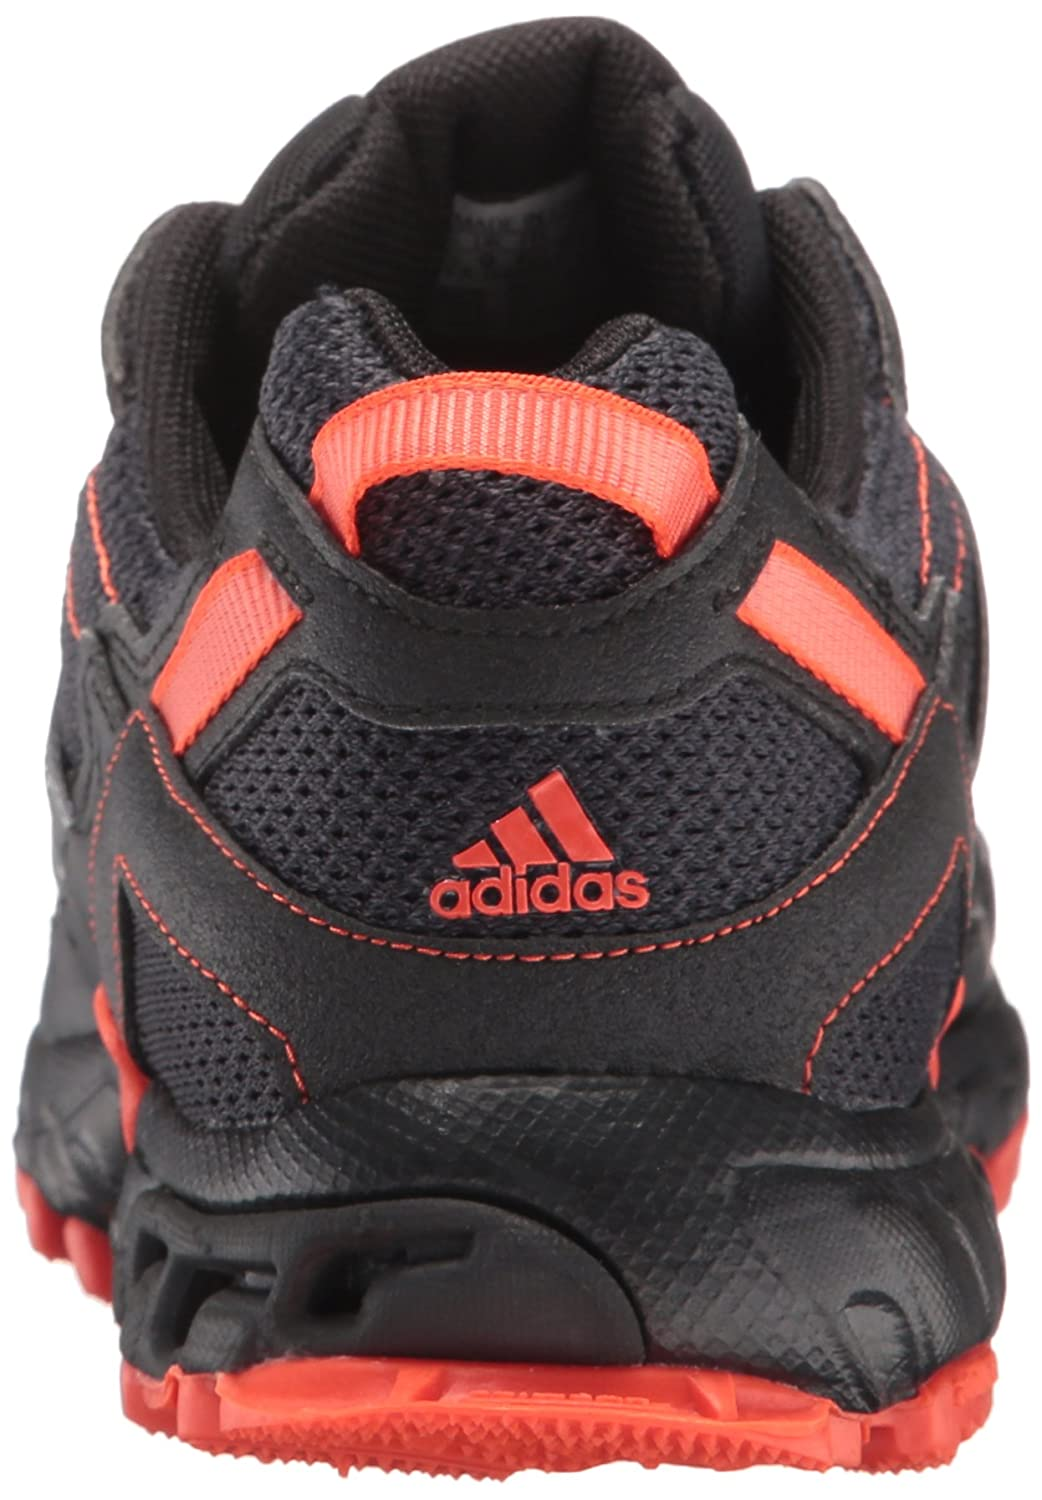 adidas trail runner